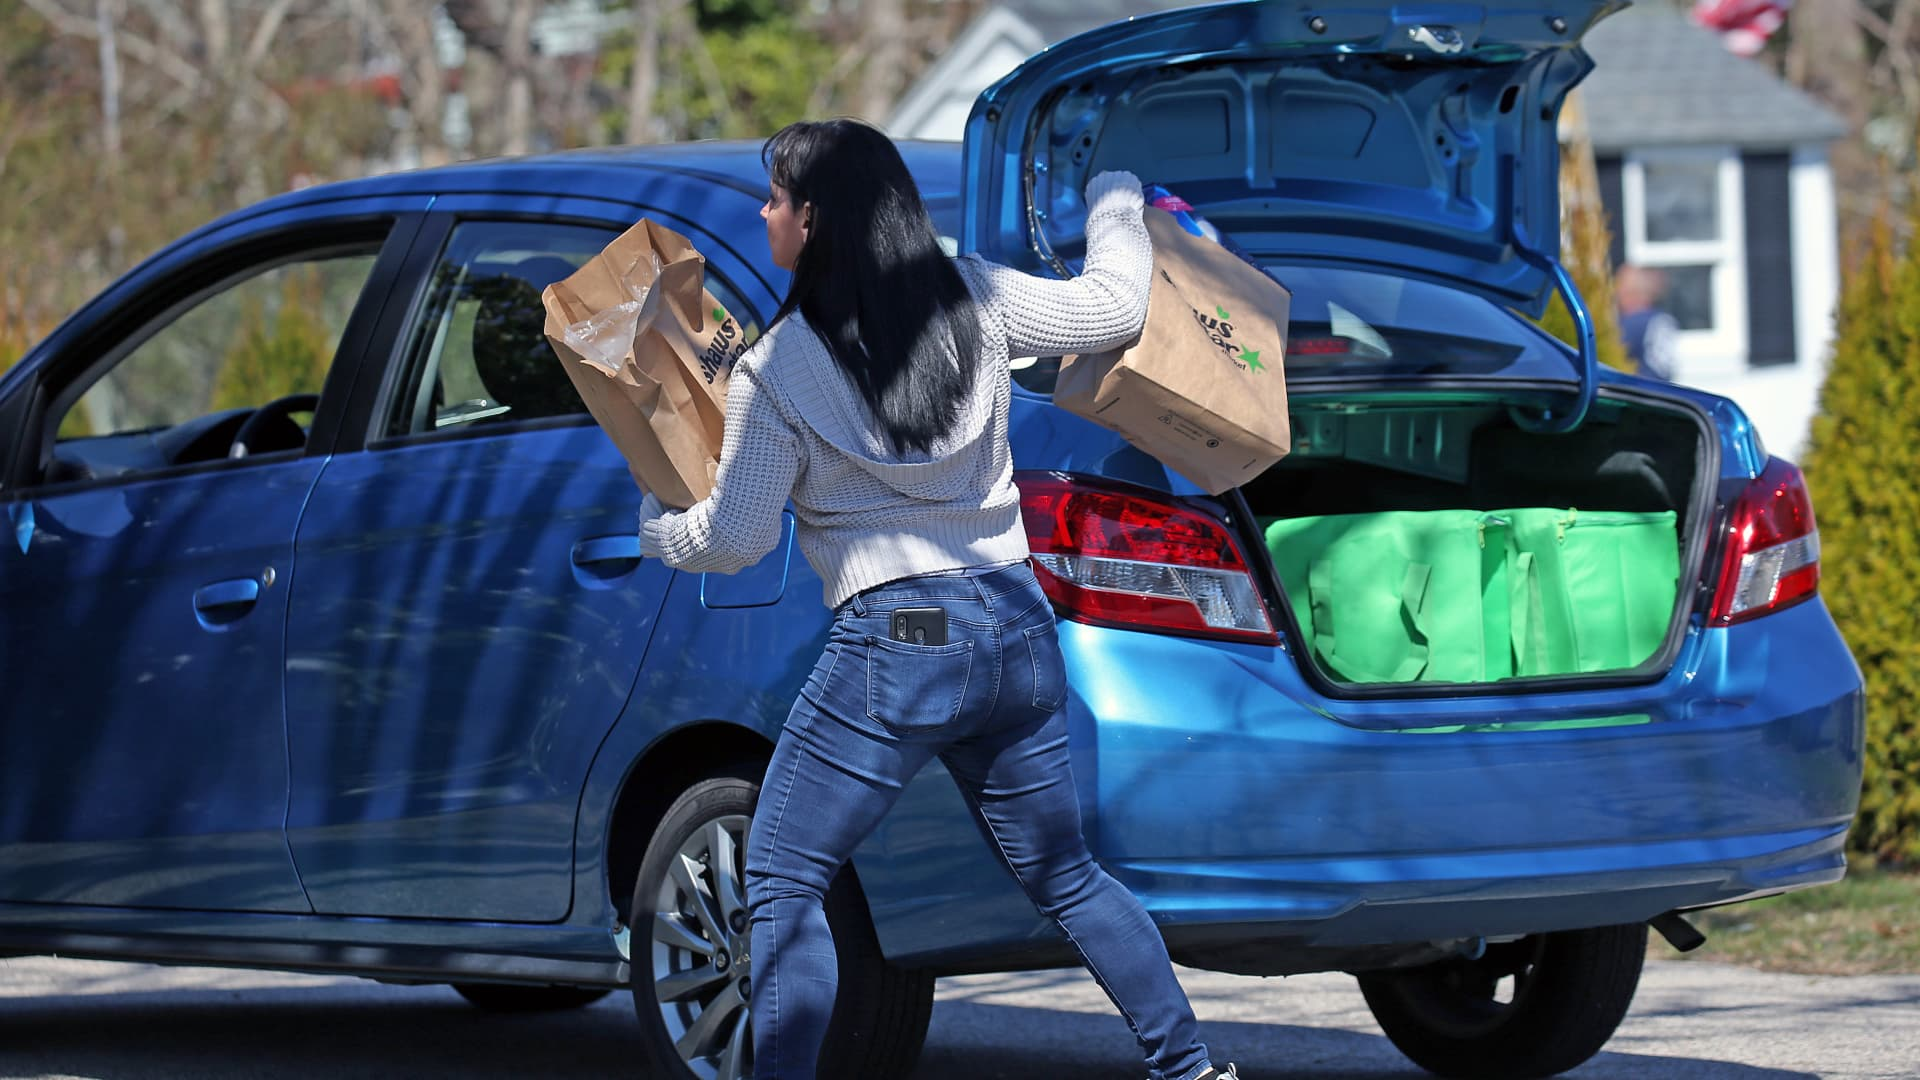 FALMOUTH, MA - APRIL 8: Instacart shopper Loralyn Geggatt makes a delivery to a customer's home during the COVID-19 pandemic in Falmouth, MA on April 7, 2020. Some Amazon, Instacart and other workers protested for better wages, hazard pay and sick time. (Photo by David L. Ryan/The Boston Globe via Getty Images)